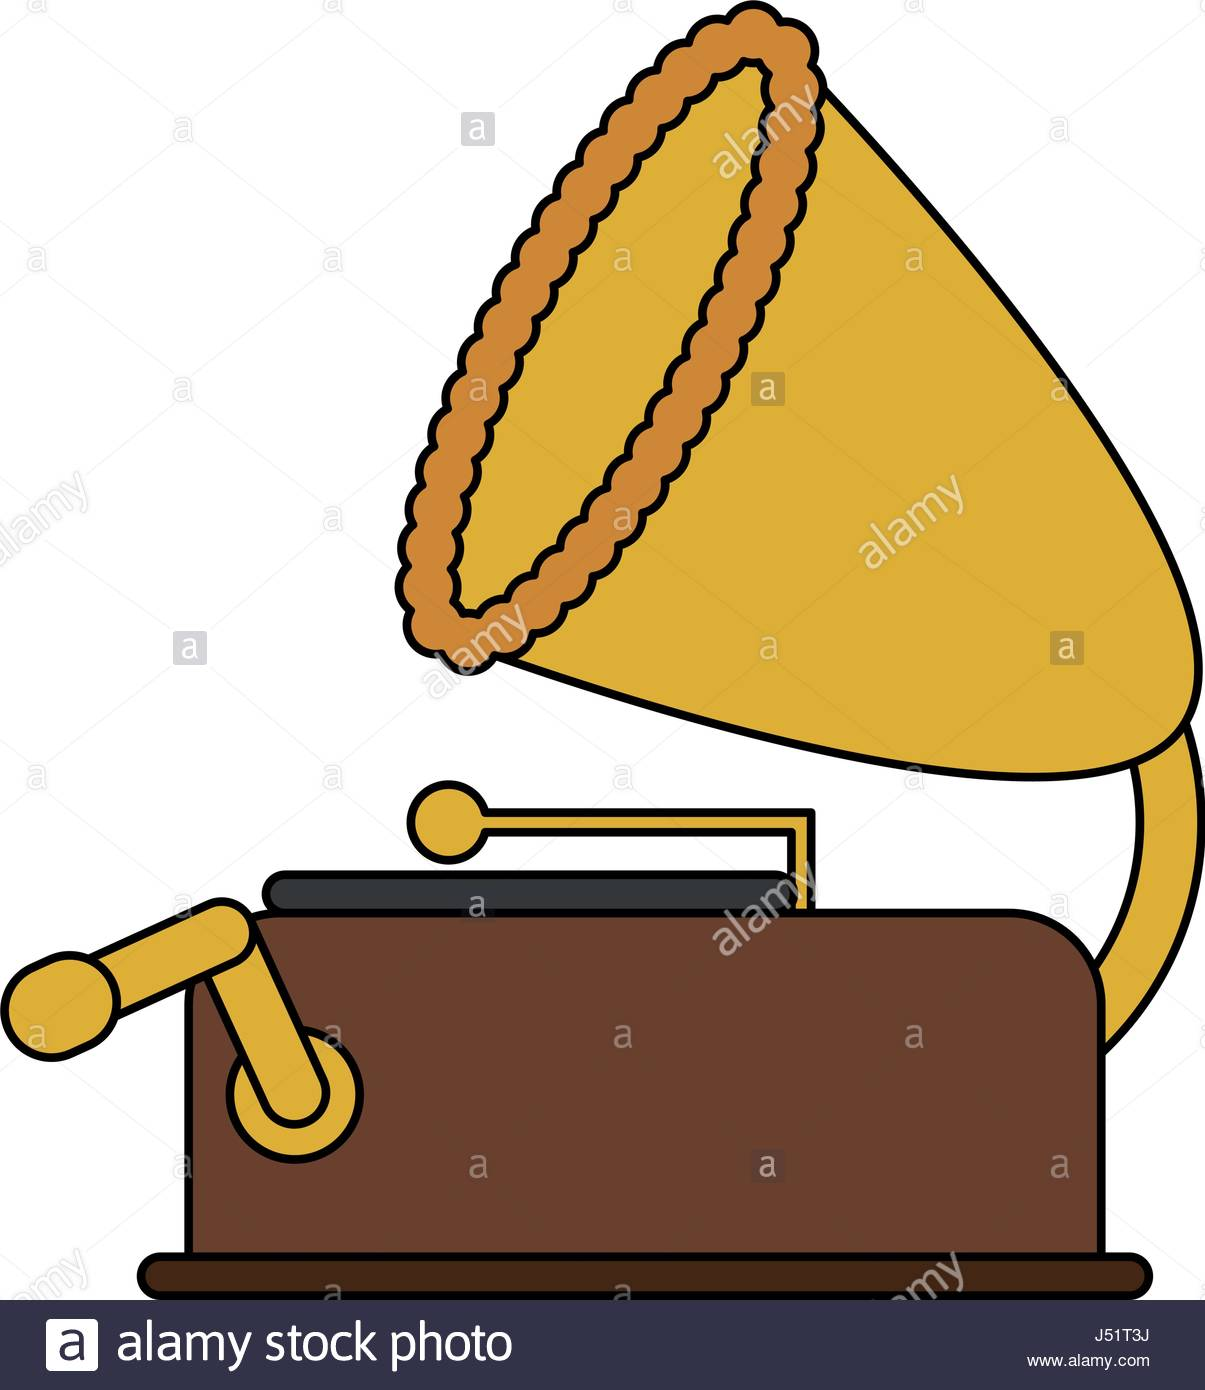 1205x1390 Color Image Old Gramophone Musical Sound Icon Stock Vector Art